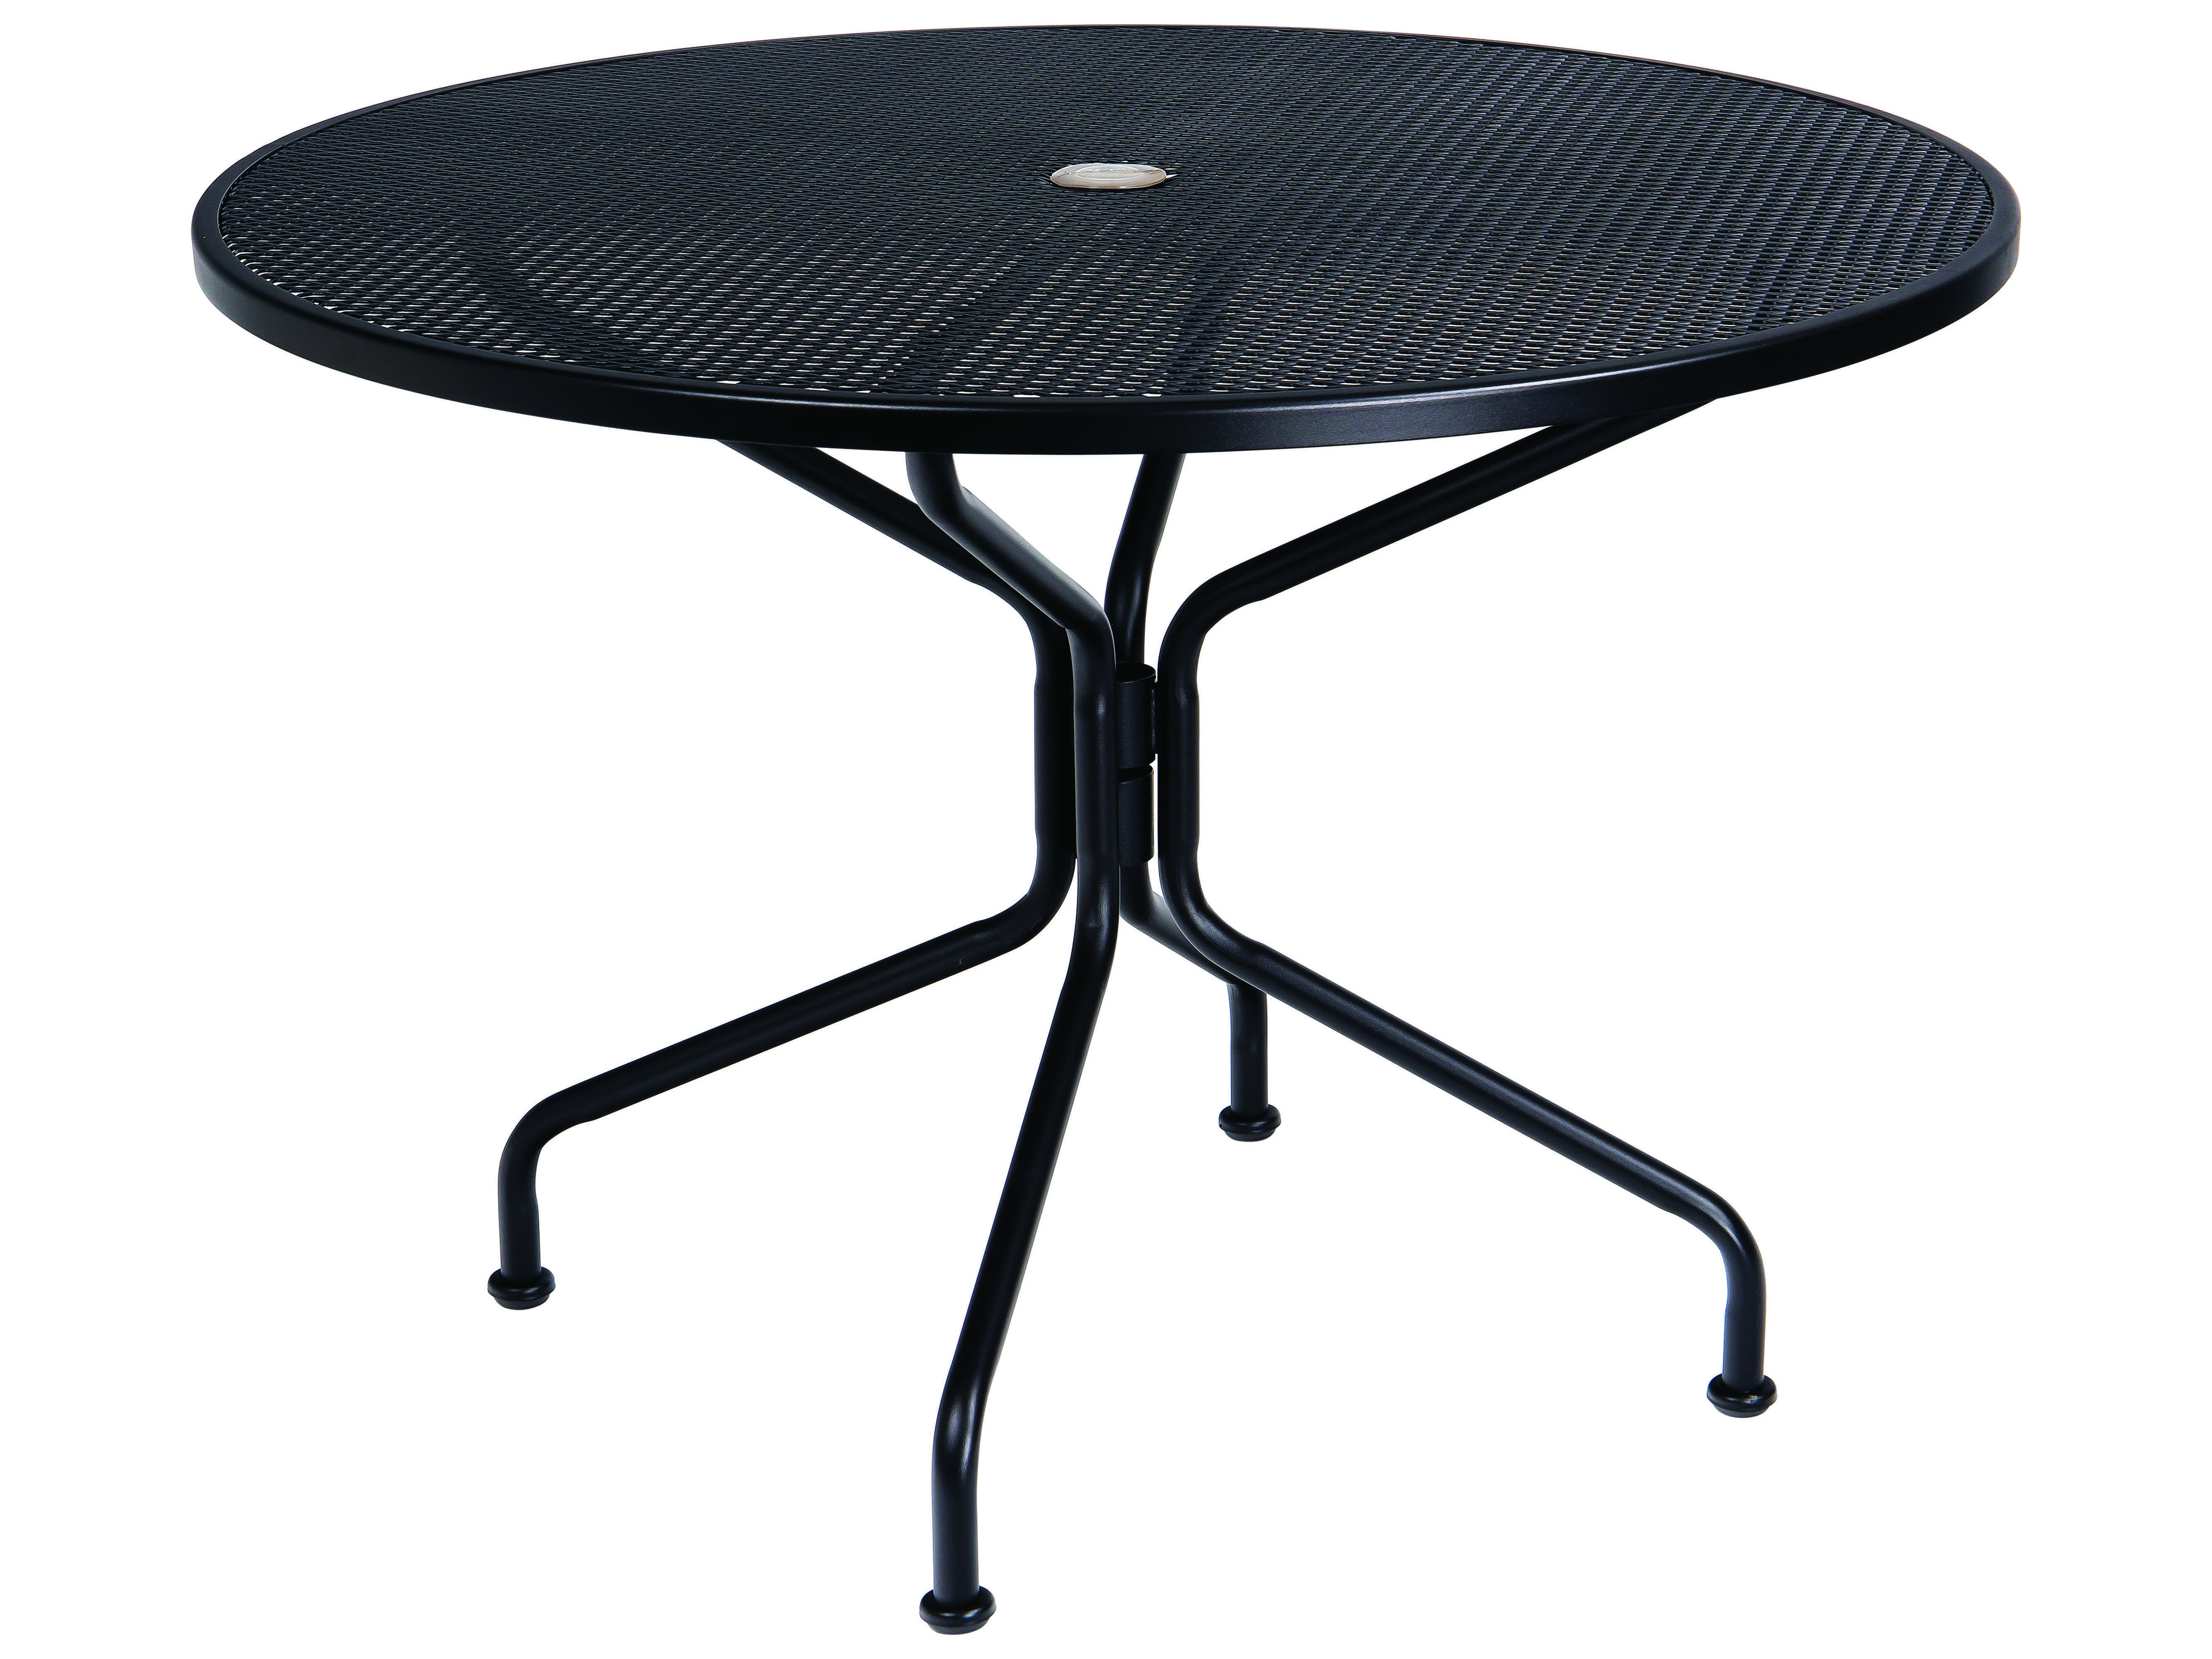 Woodard Wrought Iron Mesh 42 Wide Round 4 Spoke Dining Table With Umbrella Hole Wr190229